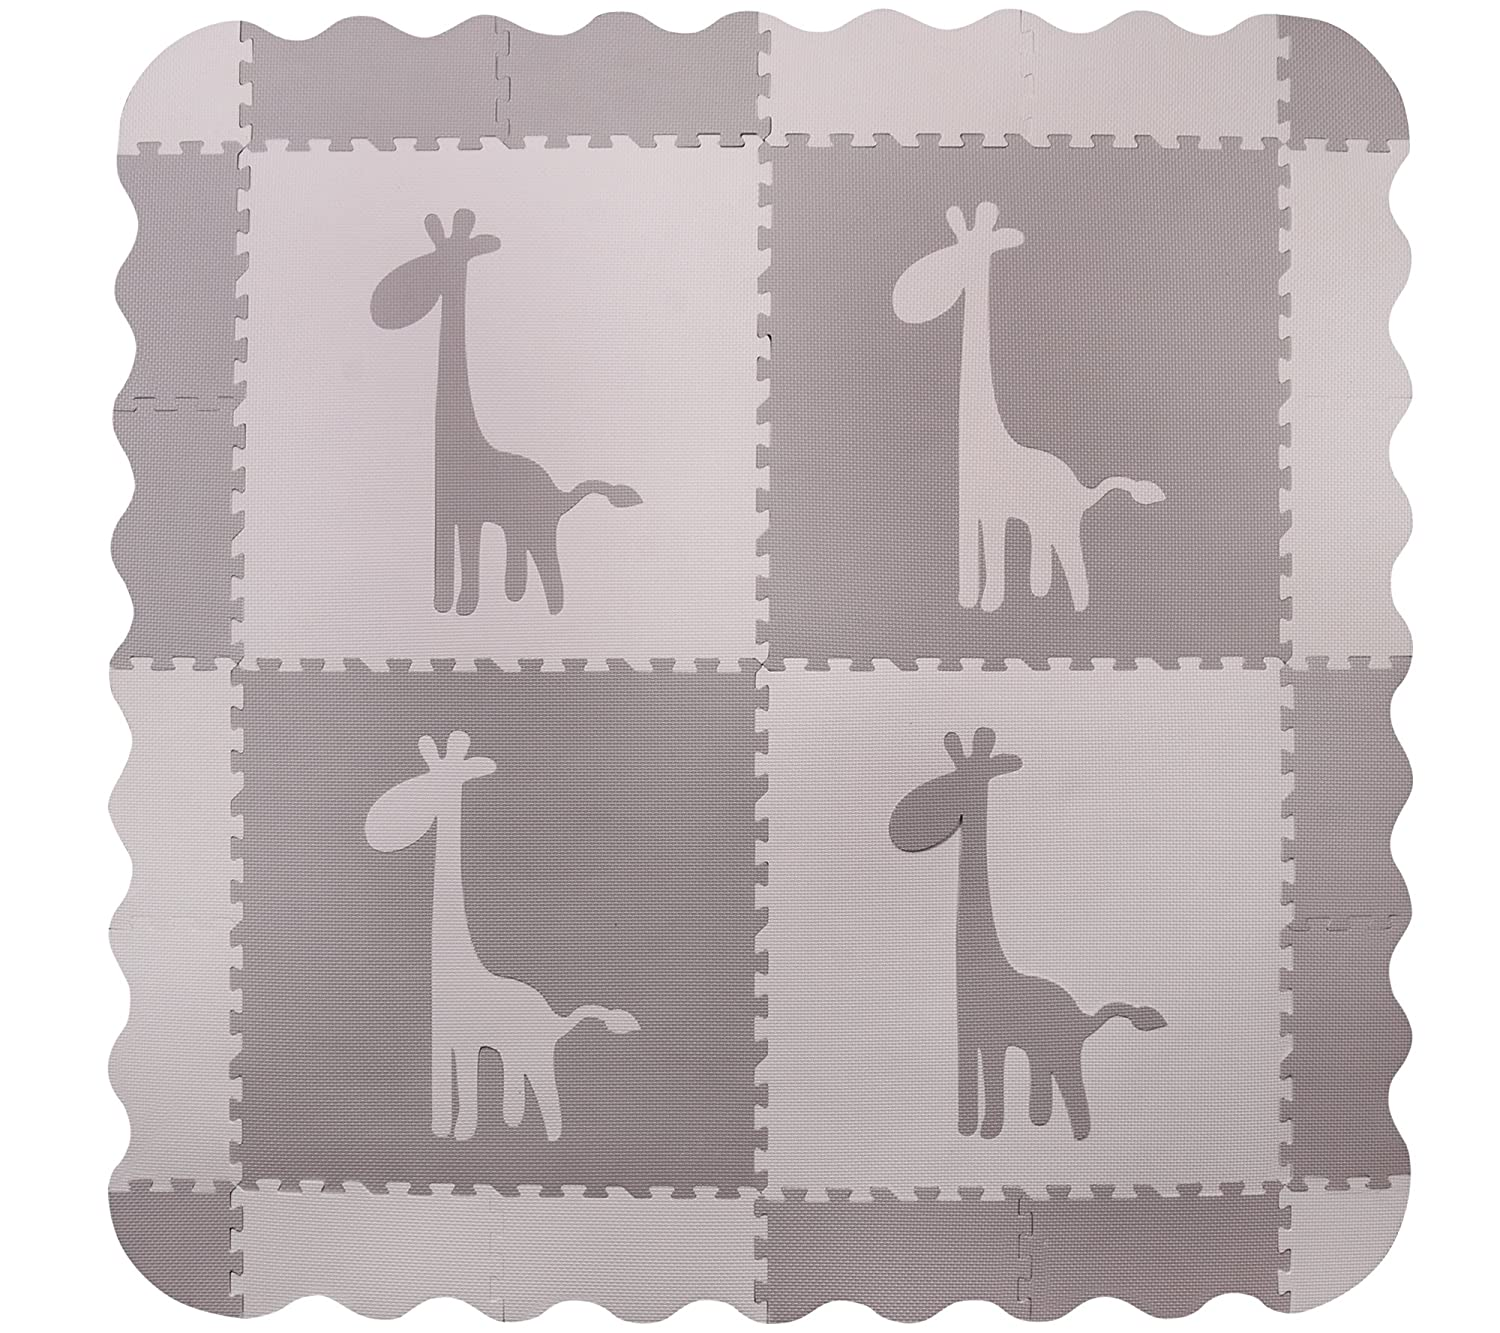 4 Large Grey Interlocking Foam Baby Play Mat with Giraffe Tiles - Play Mats with Edges. Each Tile 60 x 60cms. Total 1.2m2. For the Love of Leisure